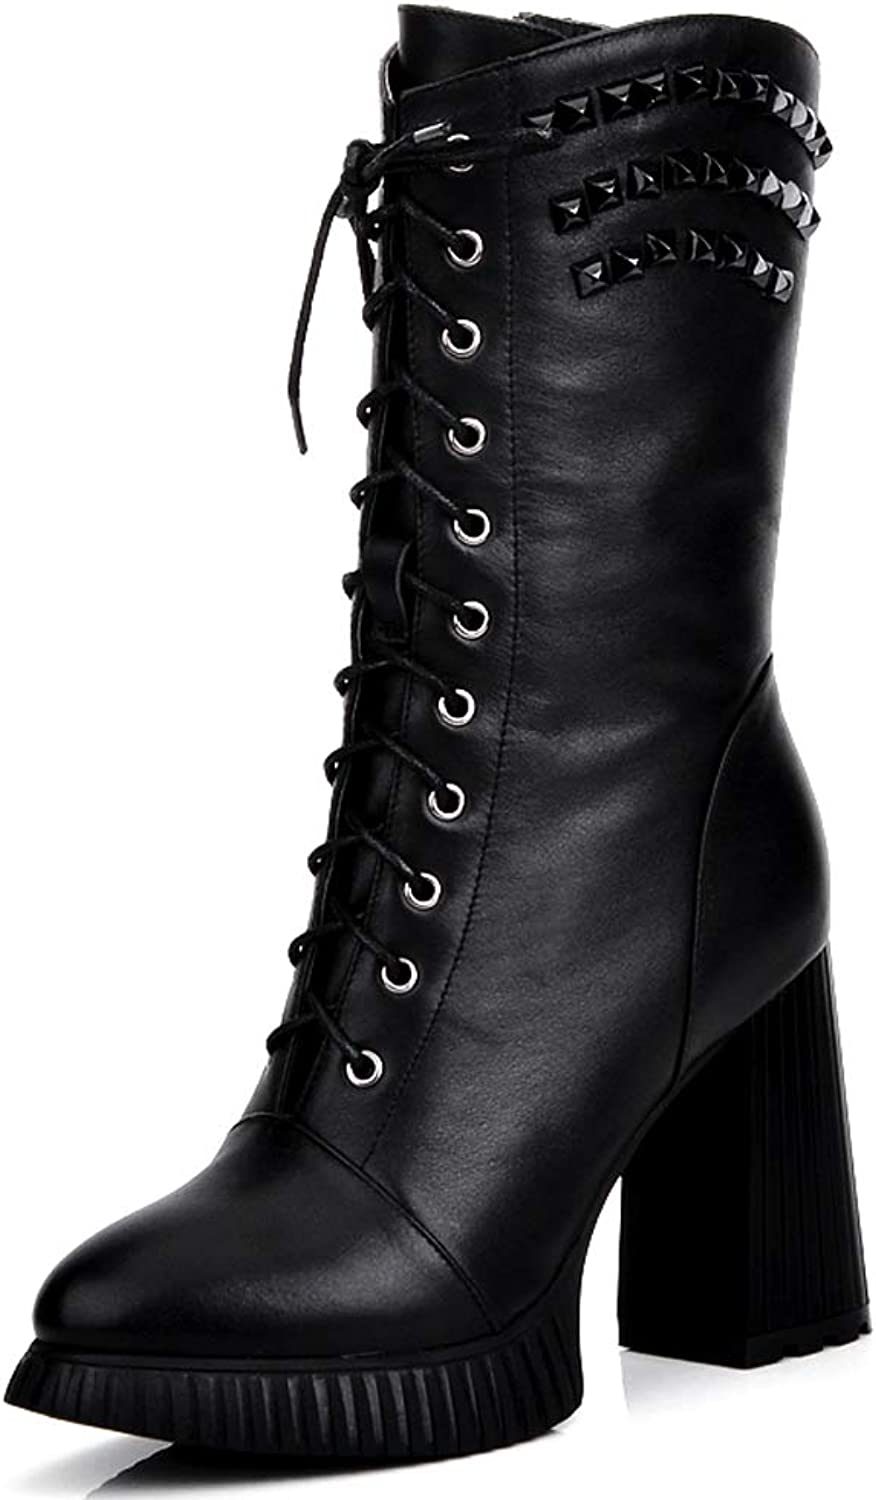 Leather Boots Autumn and Winter Women's Boots in The Tube Motorcycle Boots Women's Boots High-Heeled Martin Boots Thick with The Middle Boots Tied Laces